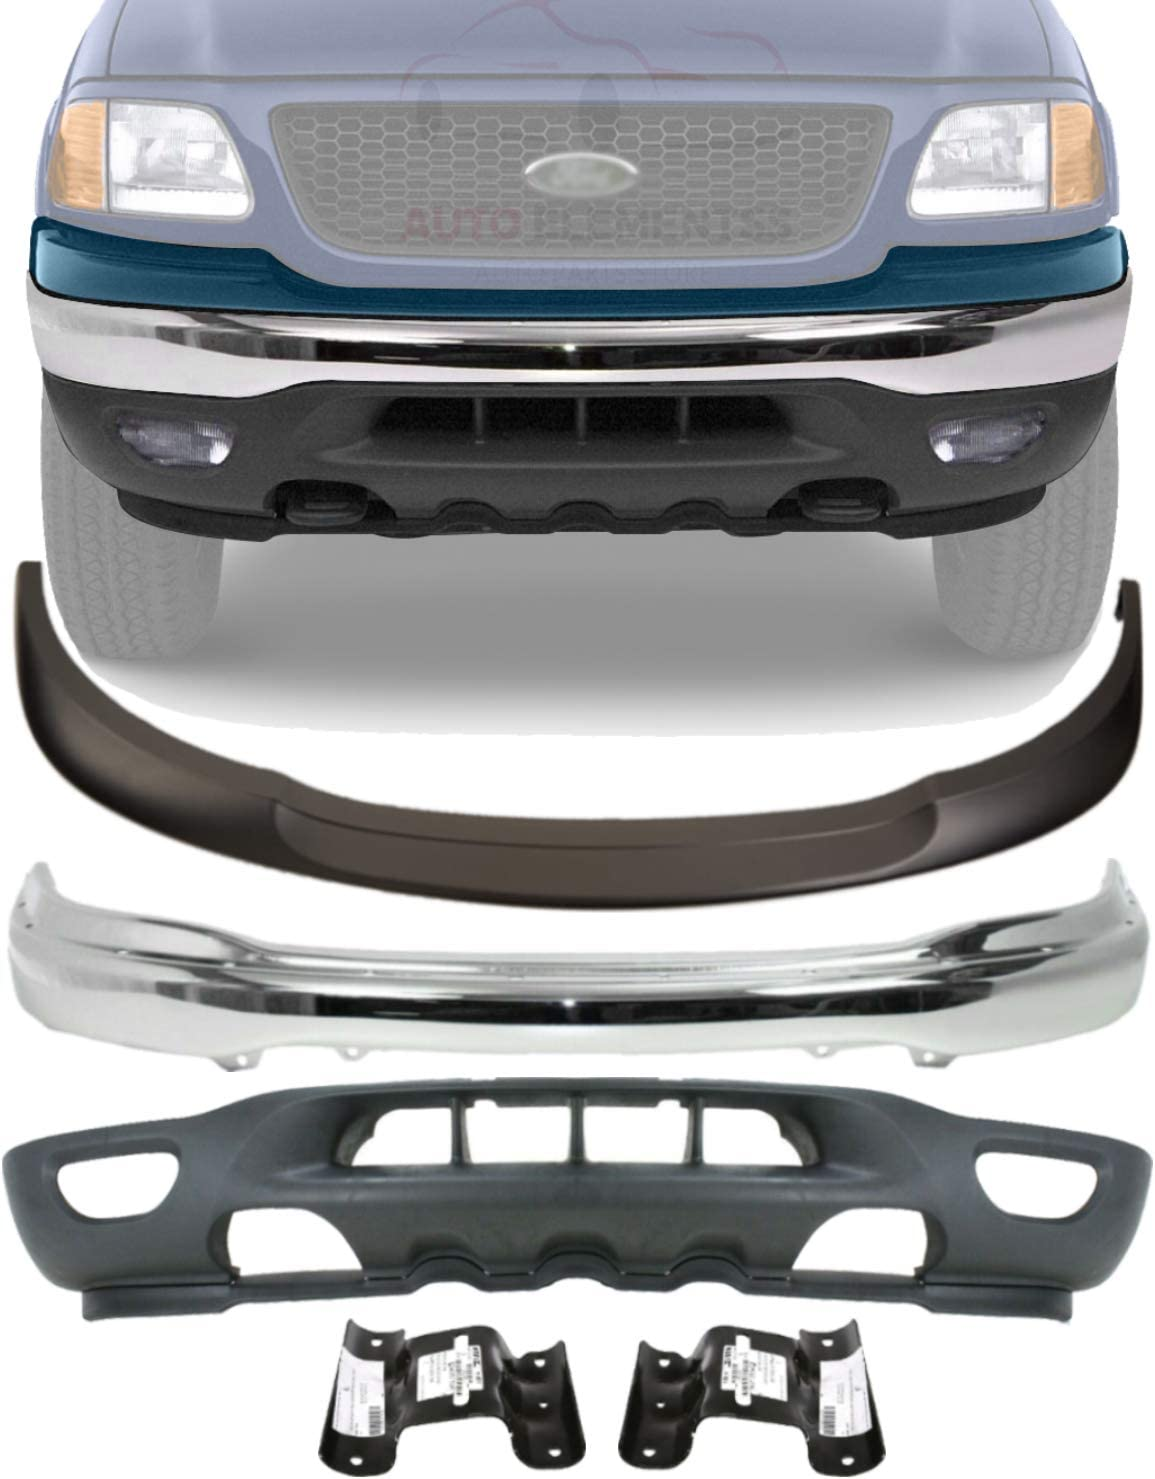 New Replacement for OE Valance fits 1999-03 Ford F-150 with Tow Hook /& Fog Light Holes Front Lower Panel